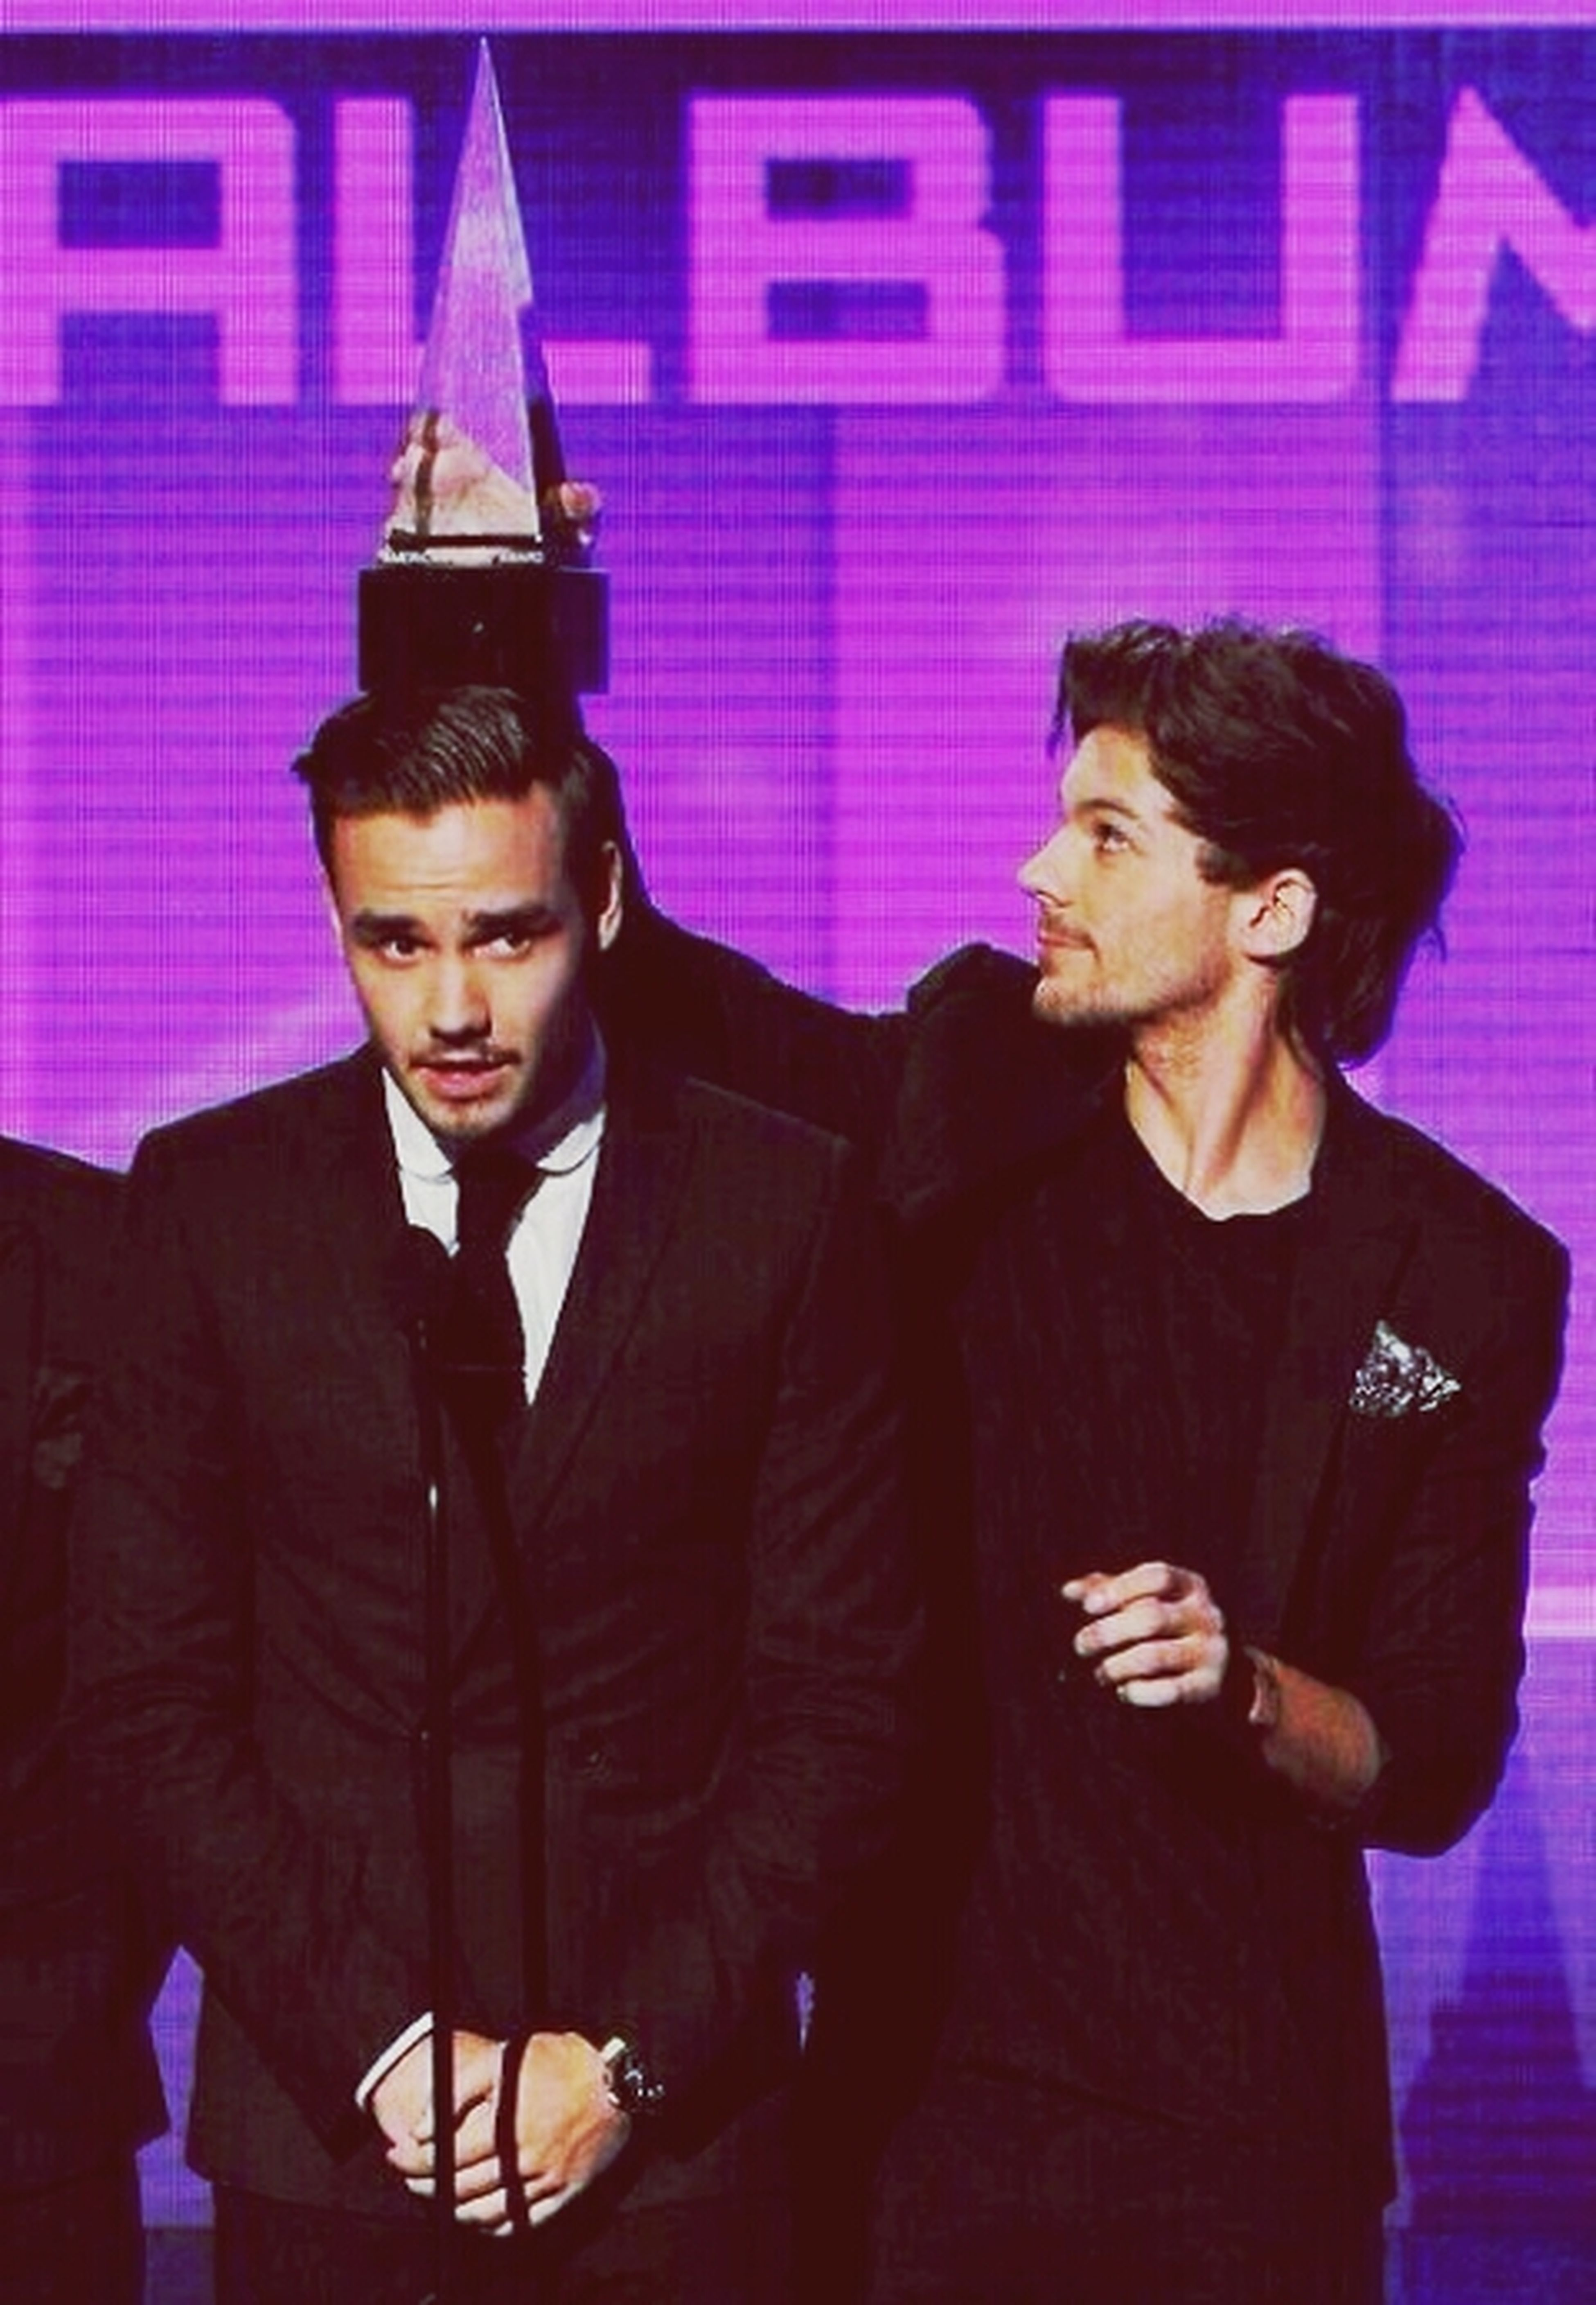 ermmm....what exactly are you doing louis?? Ama LOUIS AND LIAM AWARD ON LIAM'S HEAD STILL CUTE THOUGH